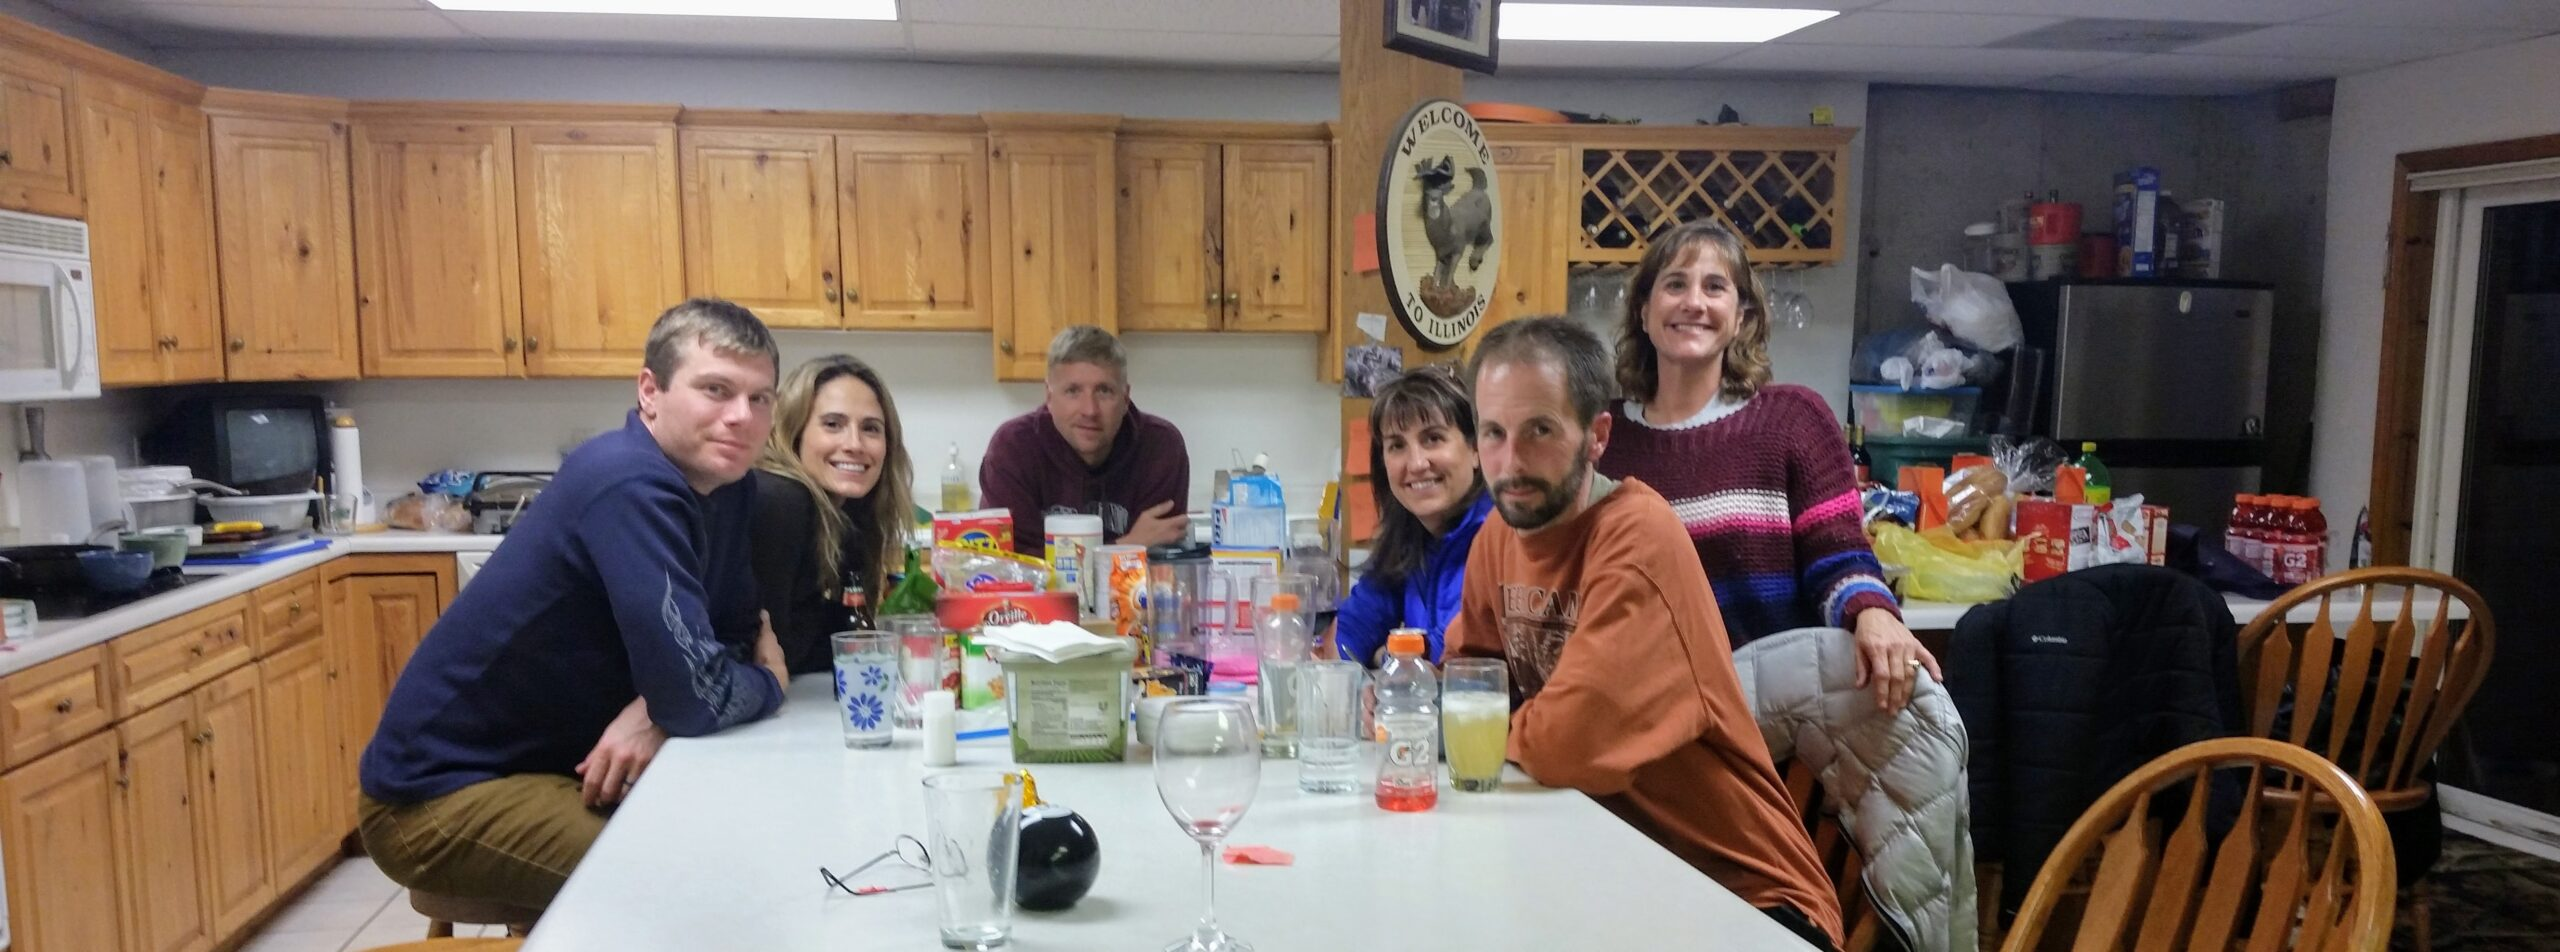 A bunch of people sitting around a kitchen for the holiday story, The Best Thanksgiving Ever!